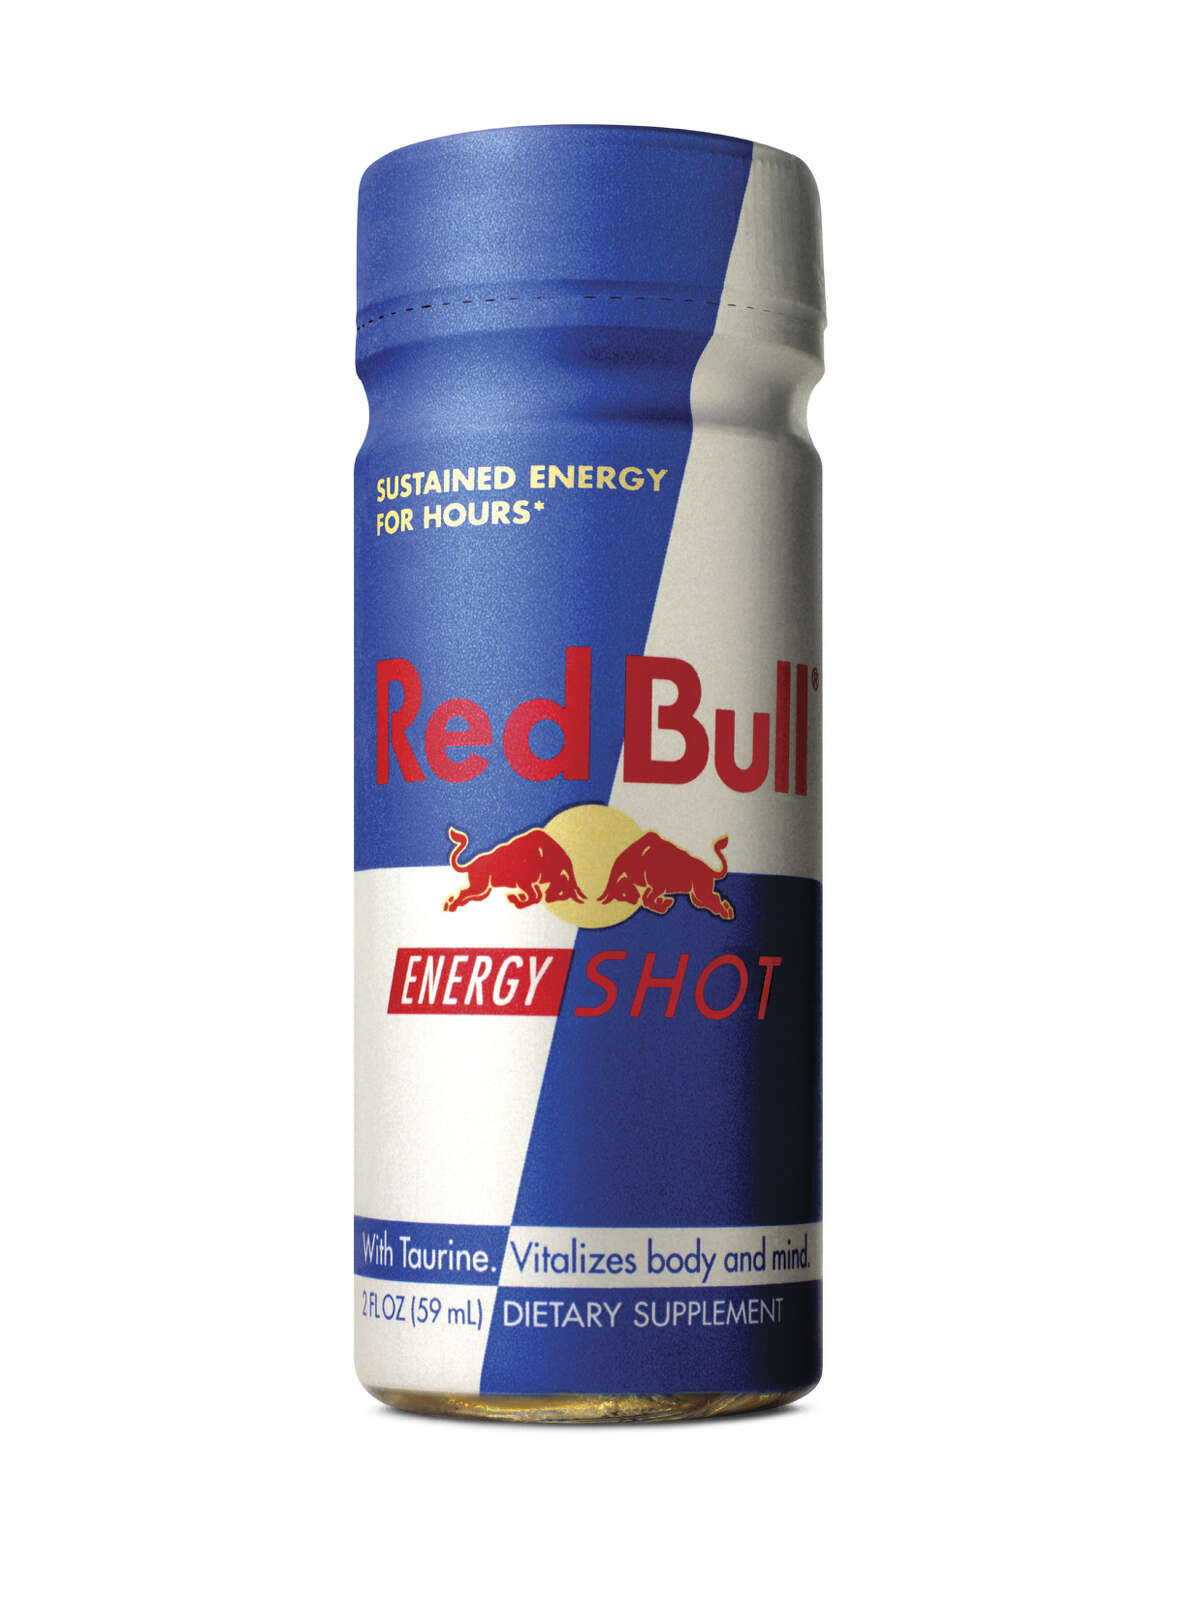 Red Bull The energy drink company agreed to pay buyers $10 cash or $15 in Red Bull products in the wake of a false advertising settlement. According to USA Today,